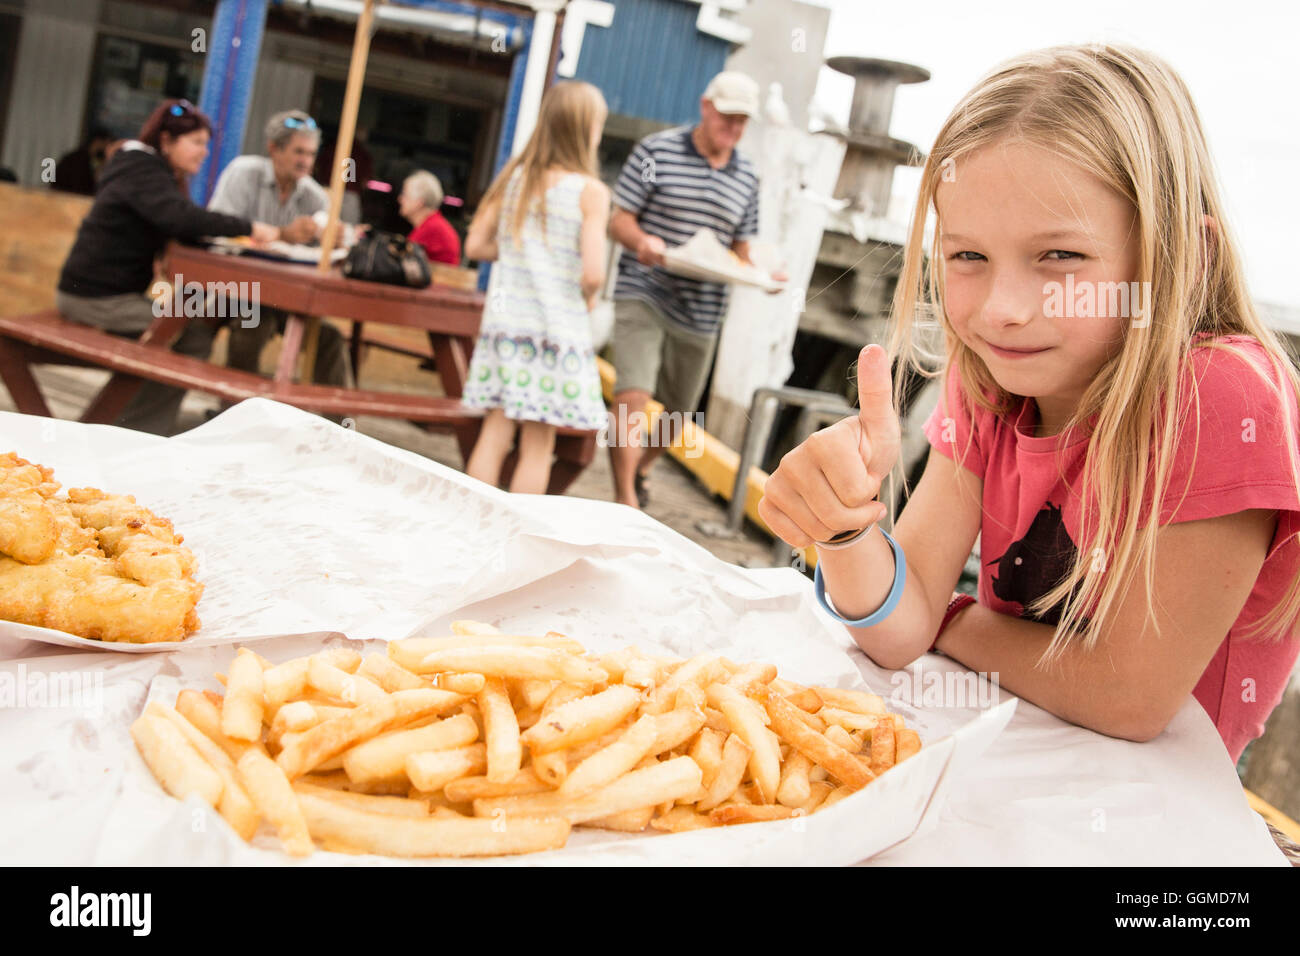 A girl with fish and chips at Tauranga, North Island, New Zealand - Stock Image